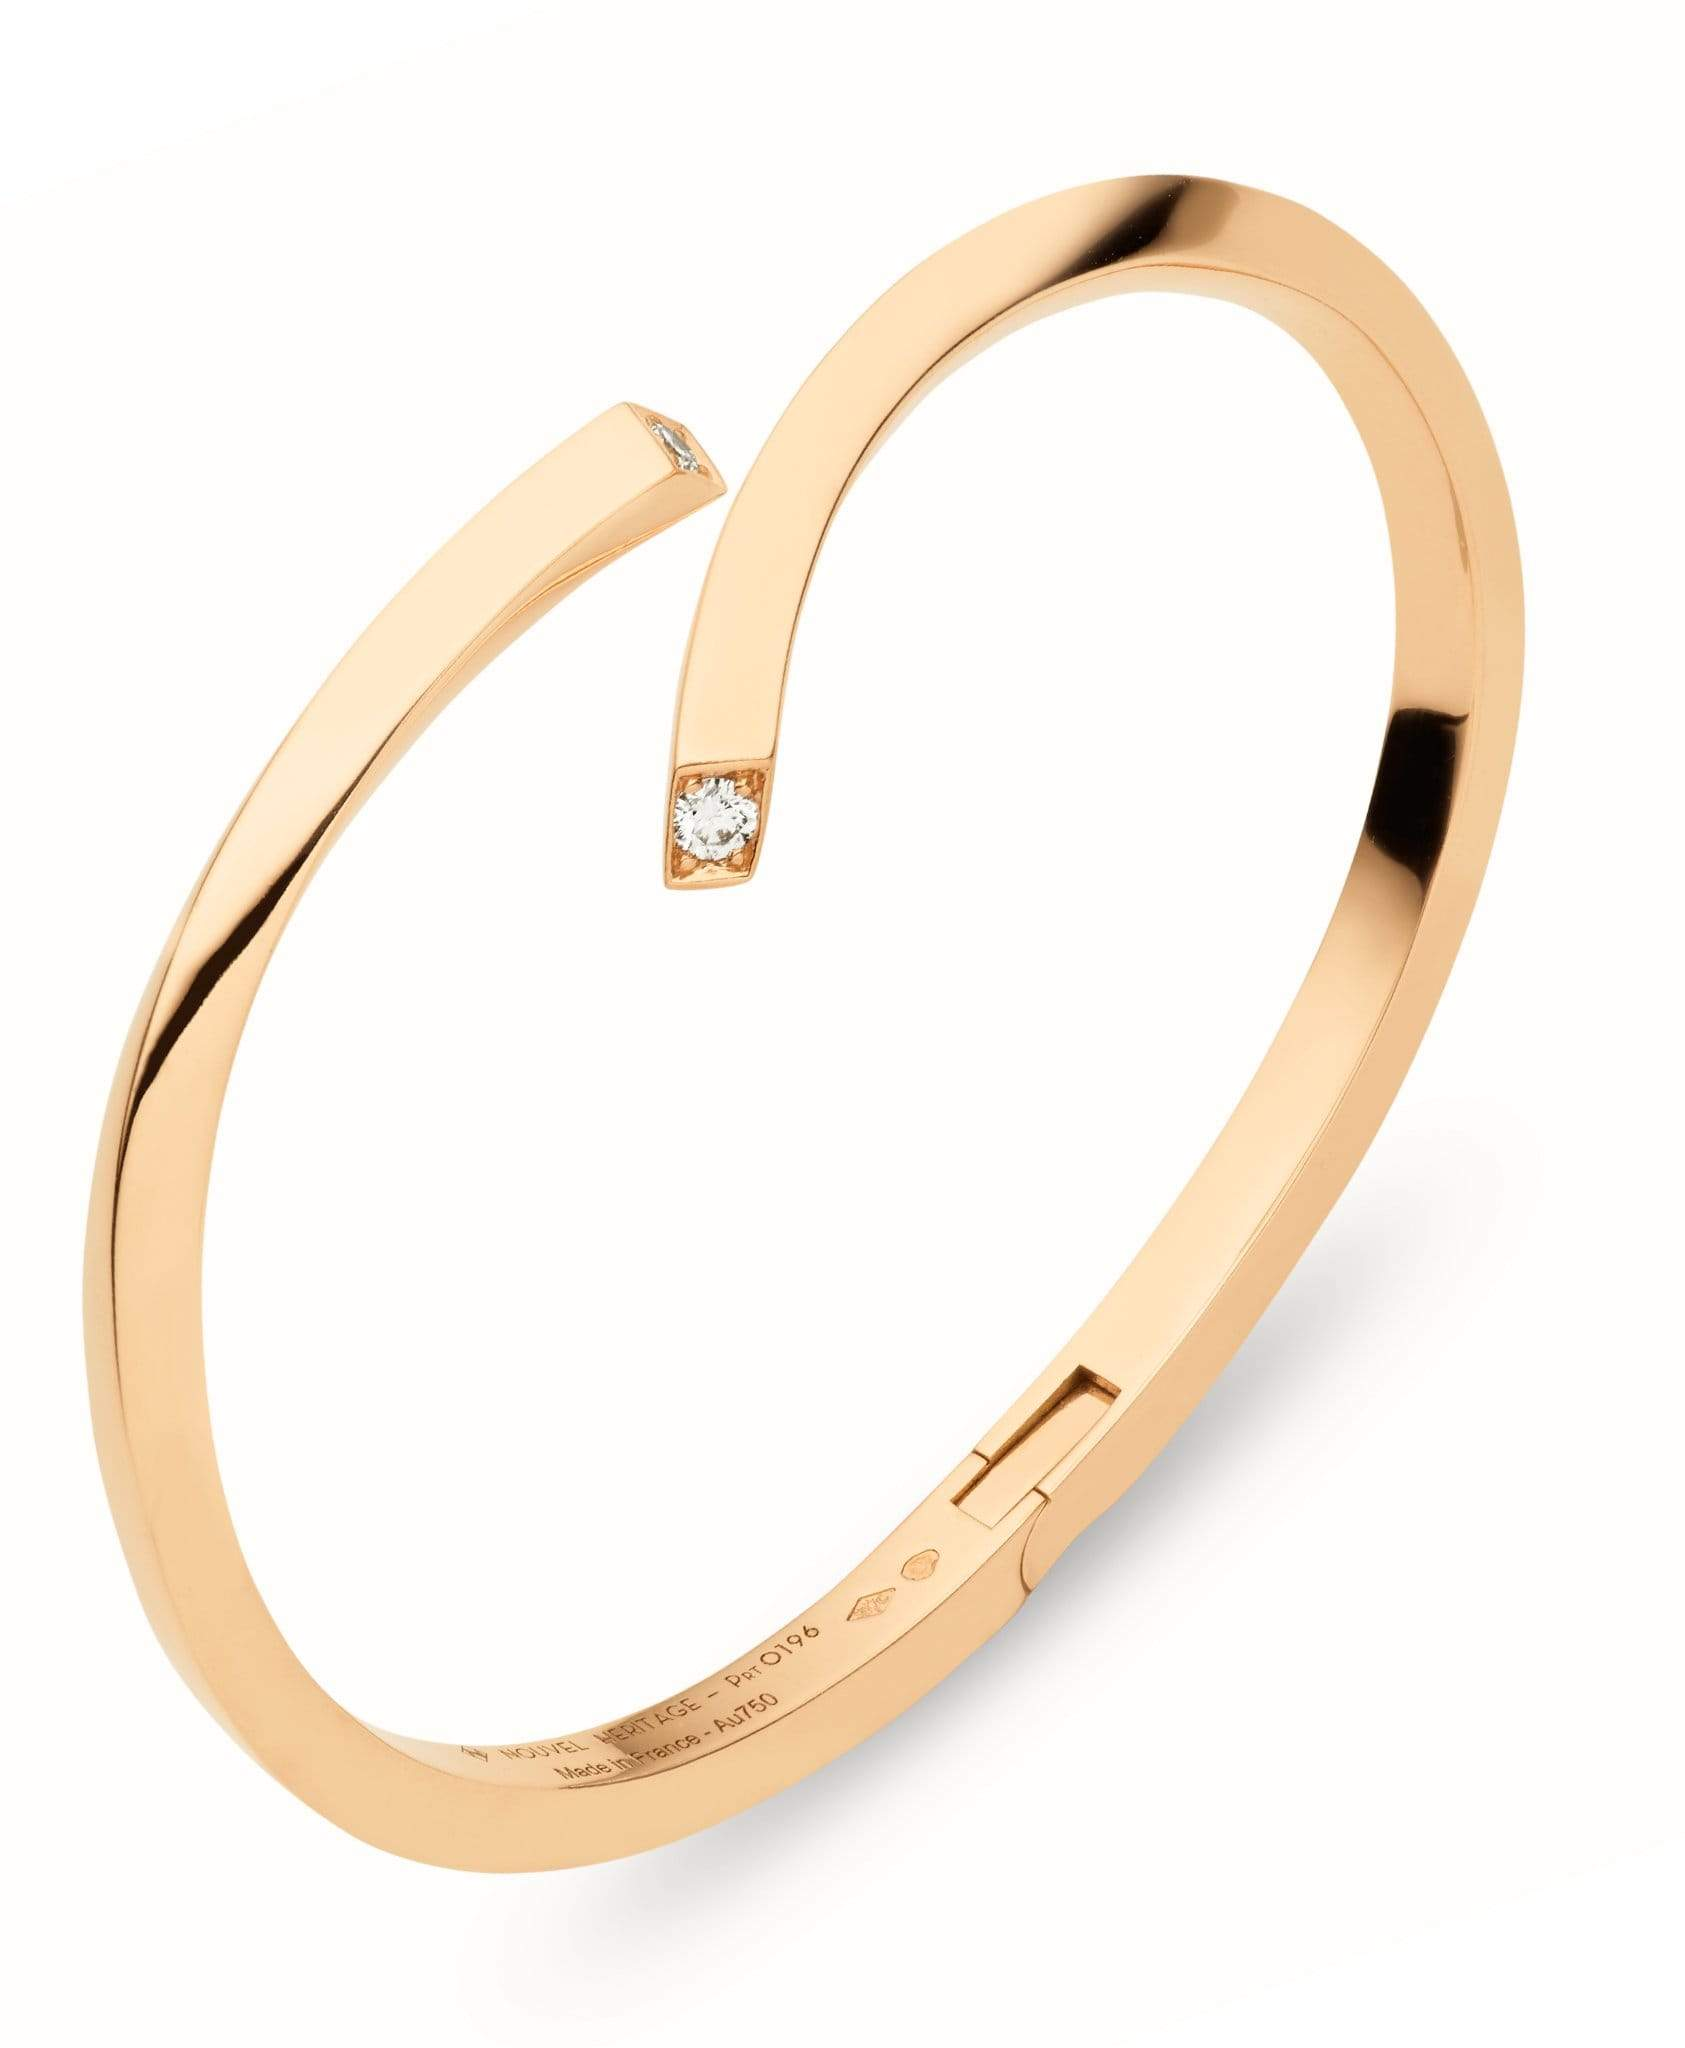 Gold Thread Bangle: Discover Luxury Fine Jewelry | Nouvel Heritage || Rose Gold